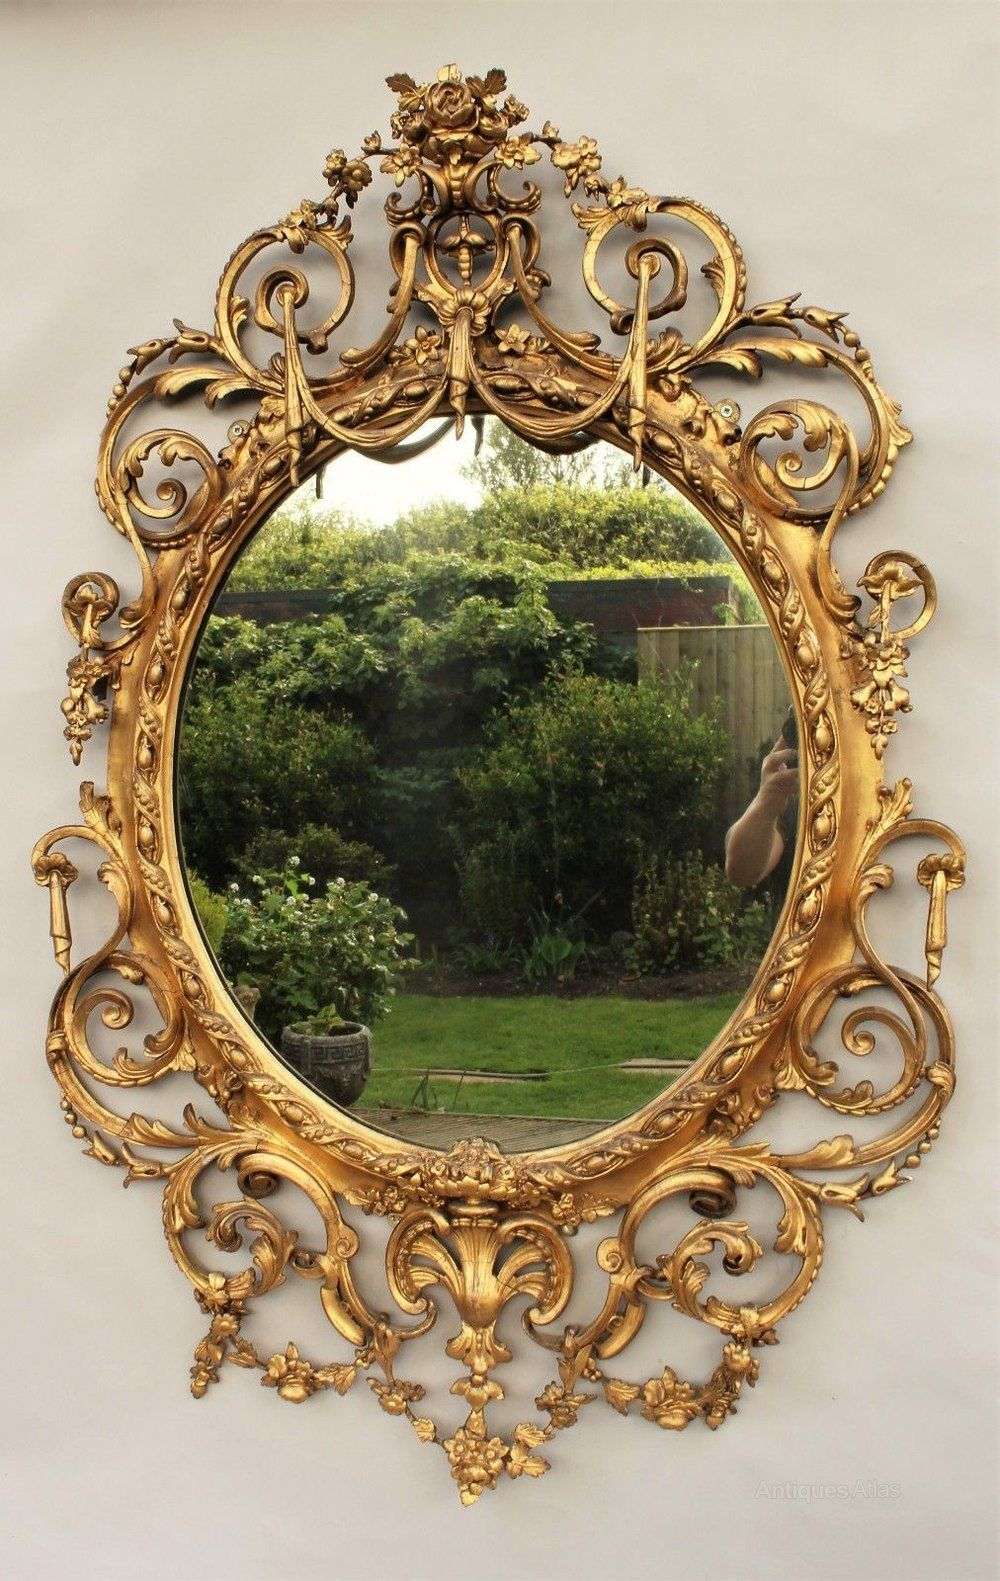 19th Century Ornate Gilded Oval Mirror